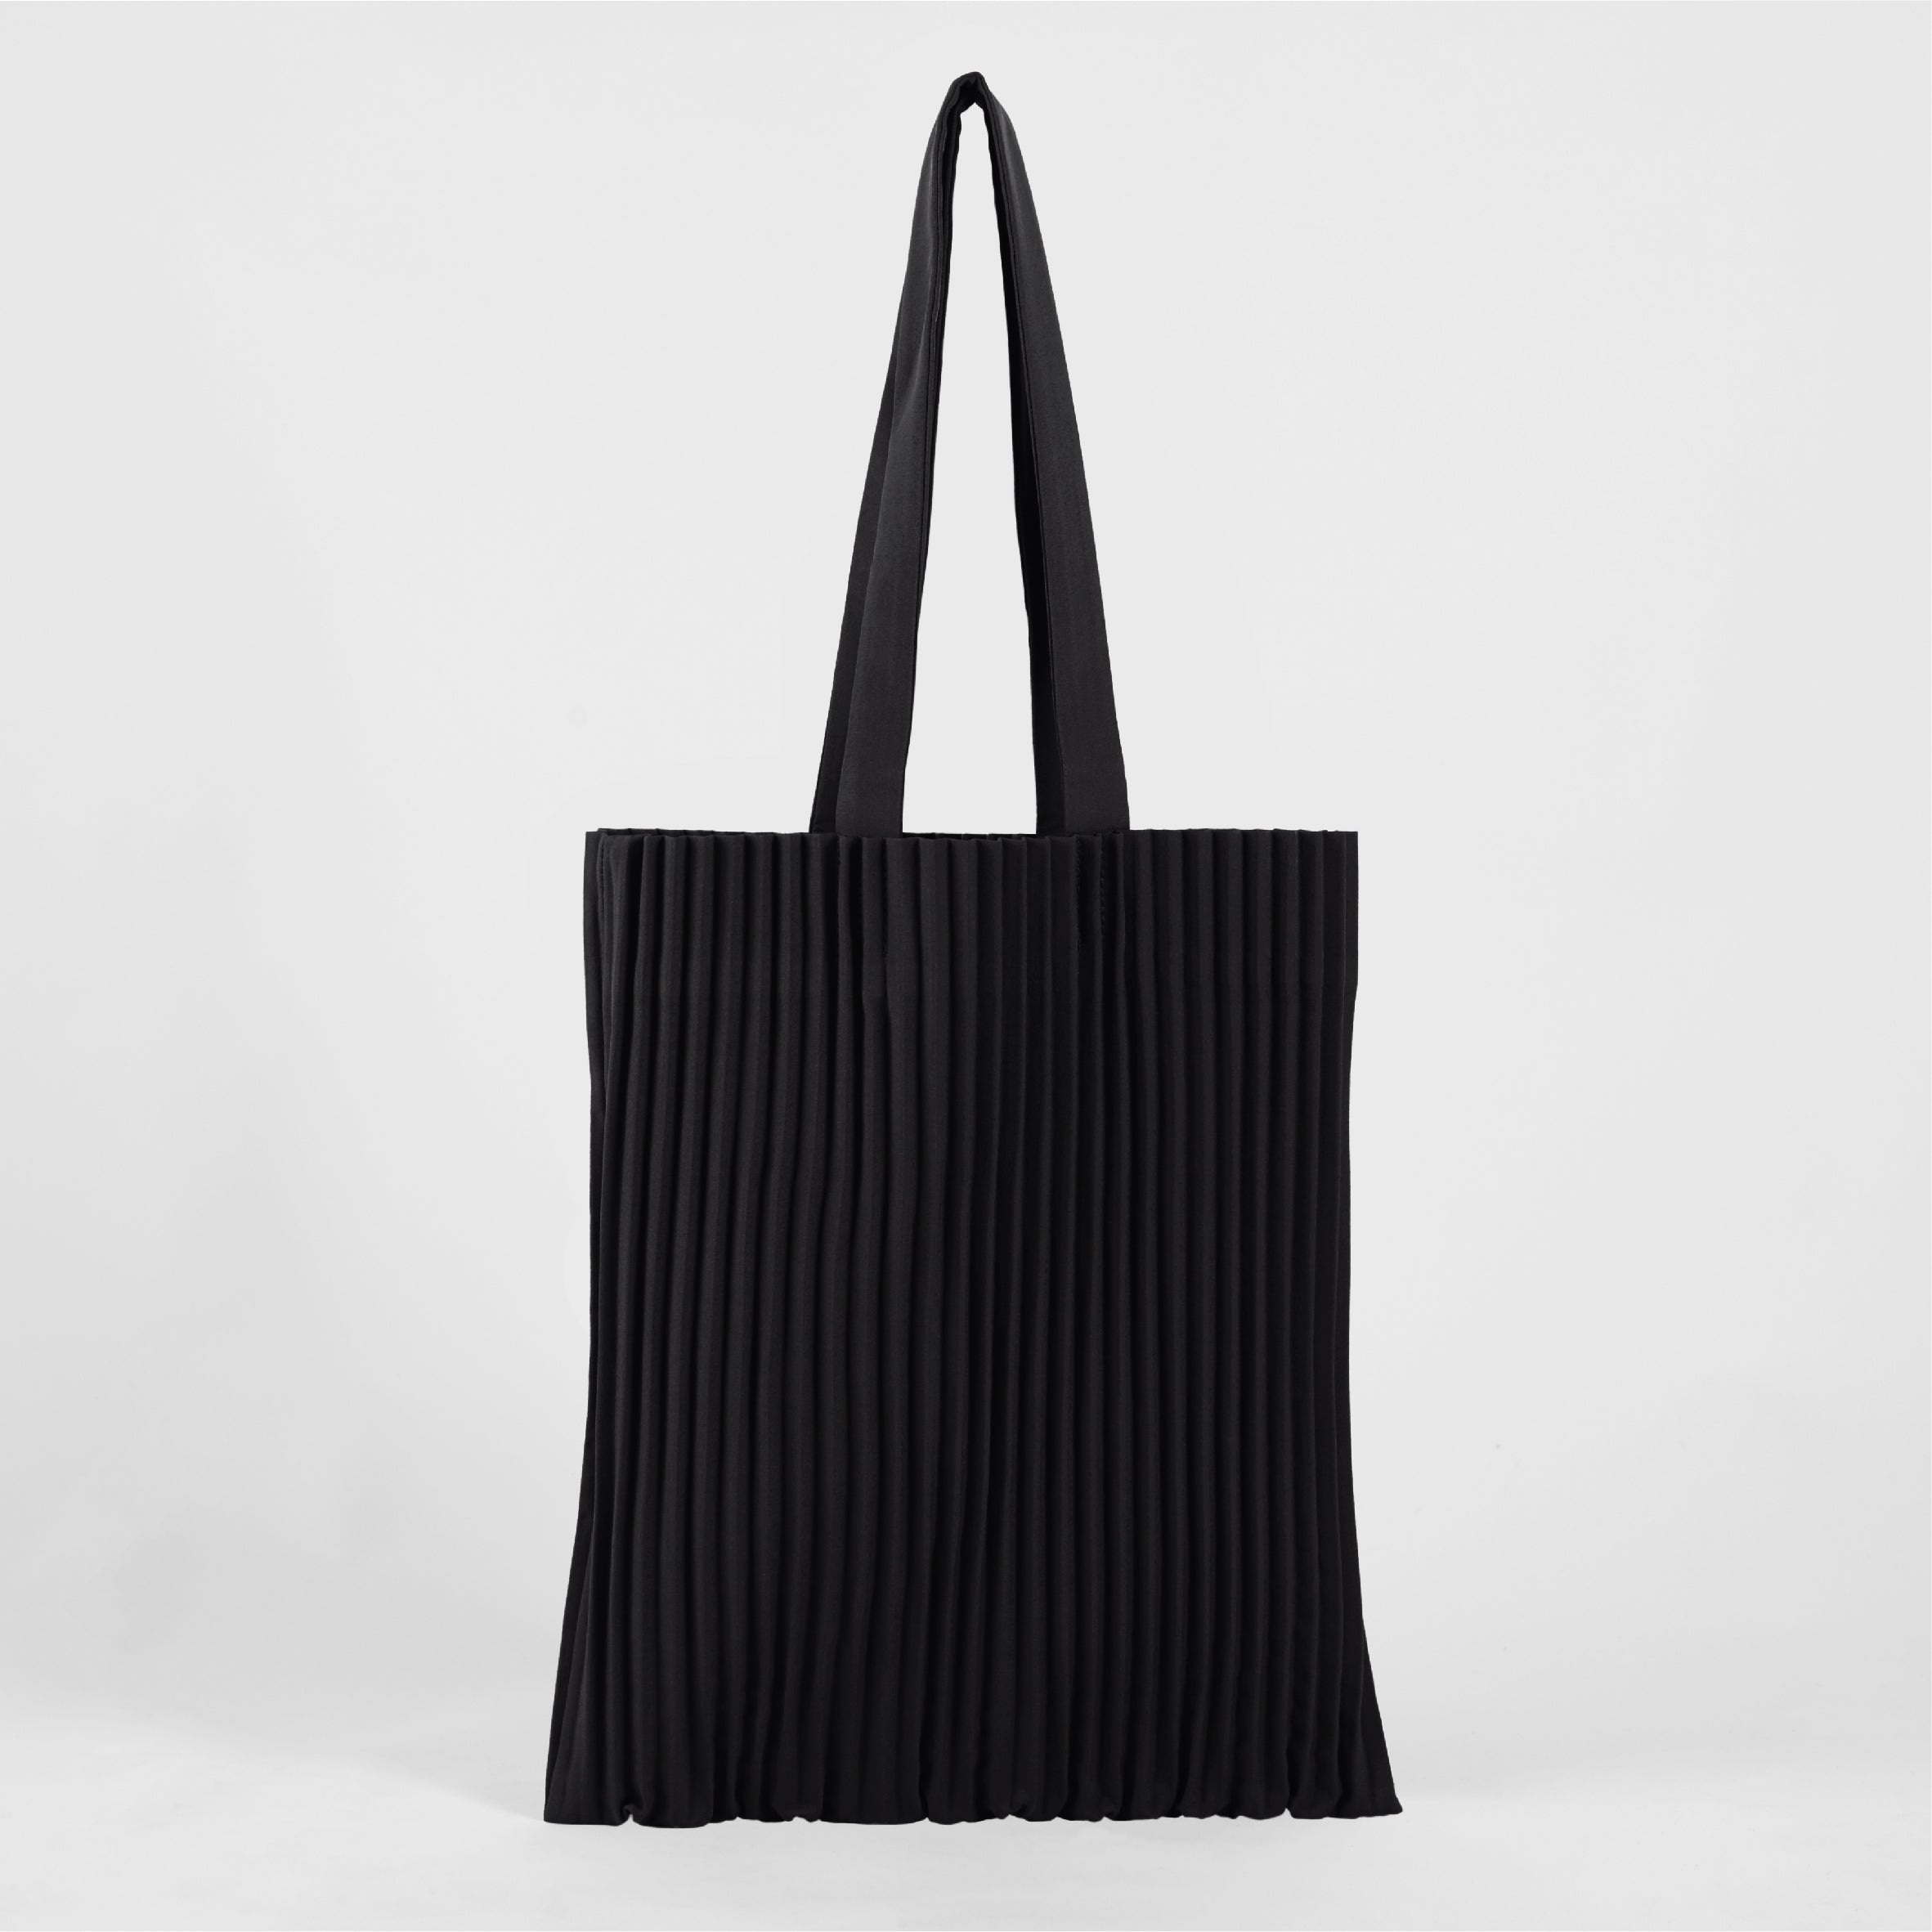 aPulp | Tote bag in Black